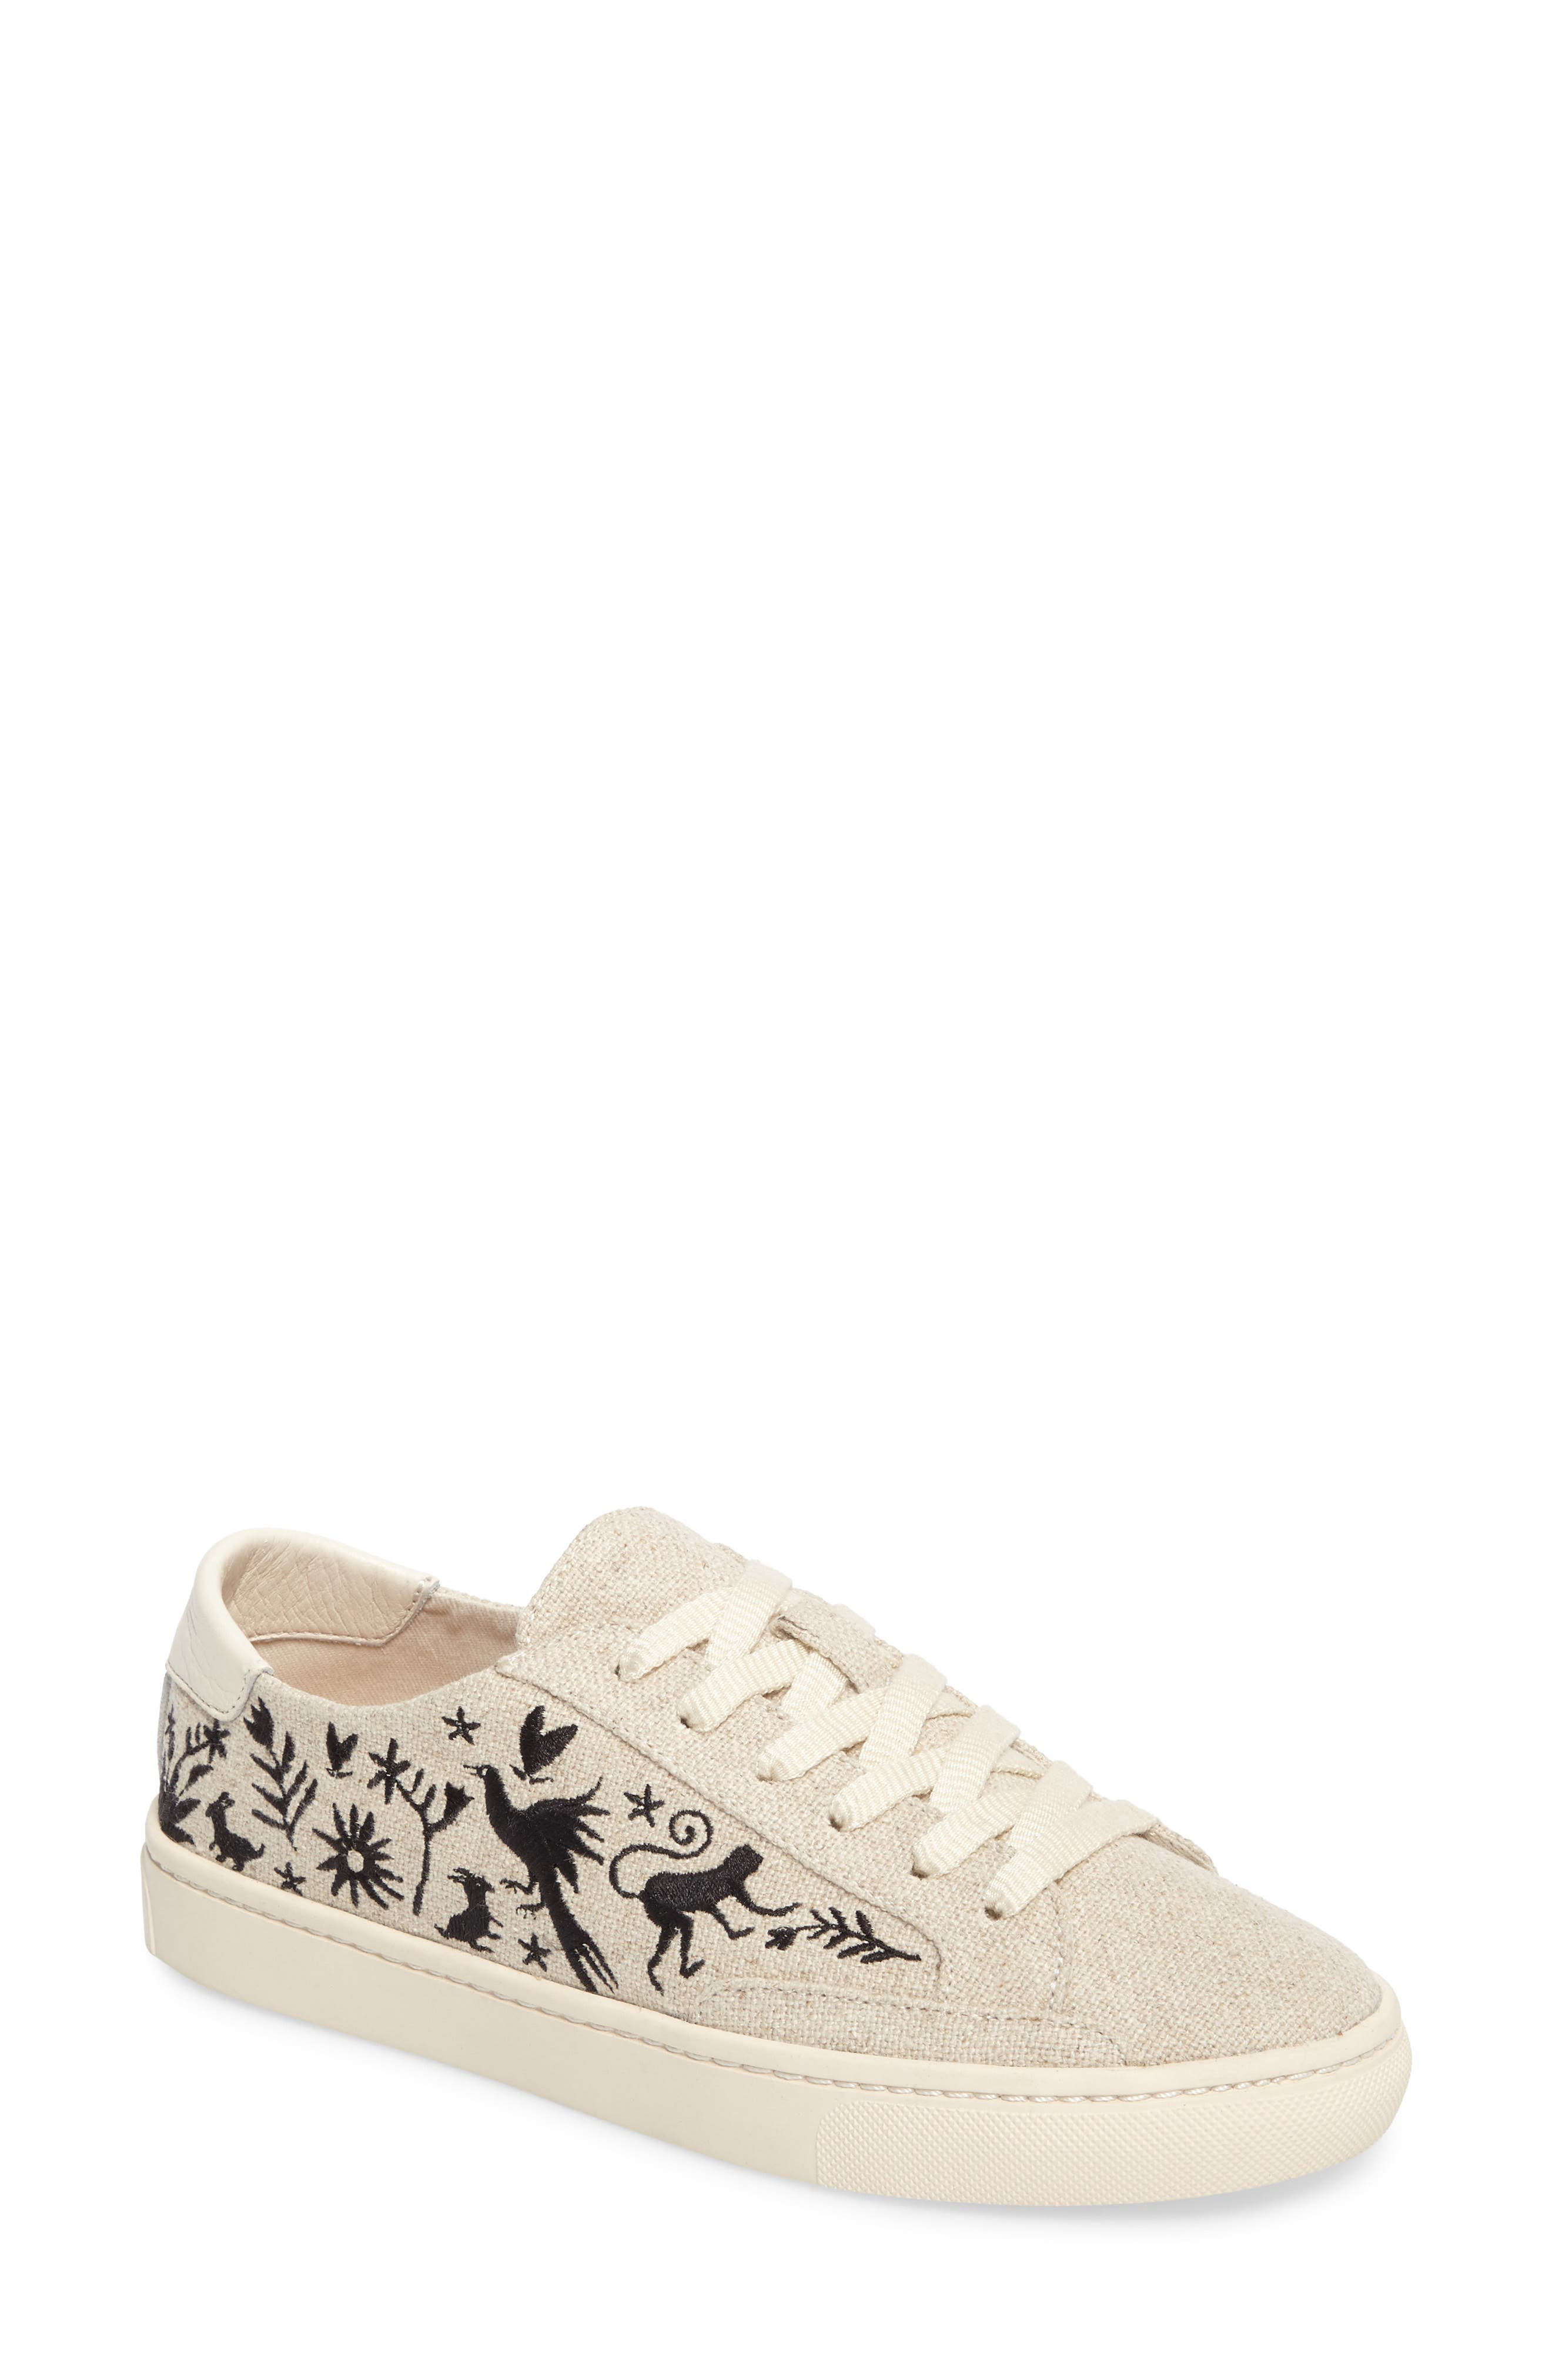 Otomi Sneaker,                             Main thumbnail 1, color,                             Sand Black